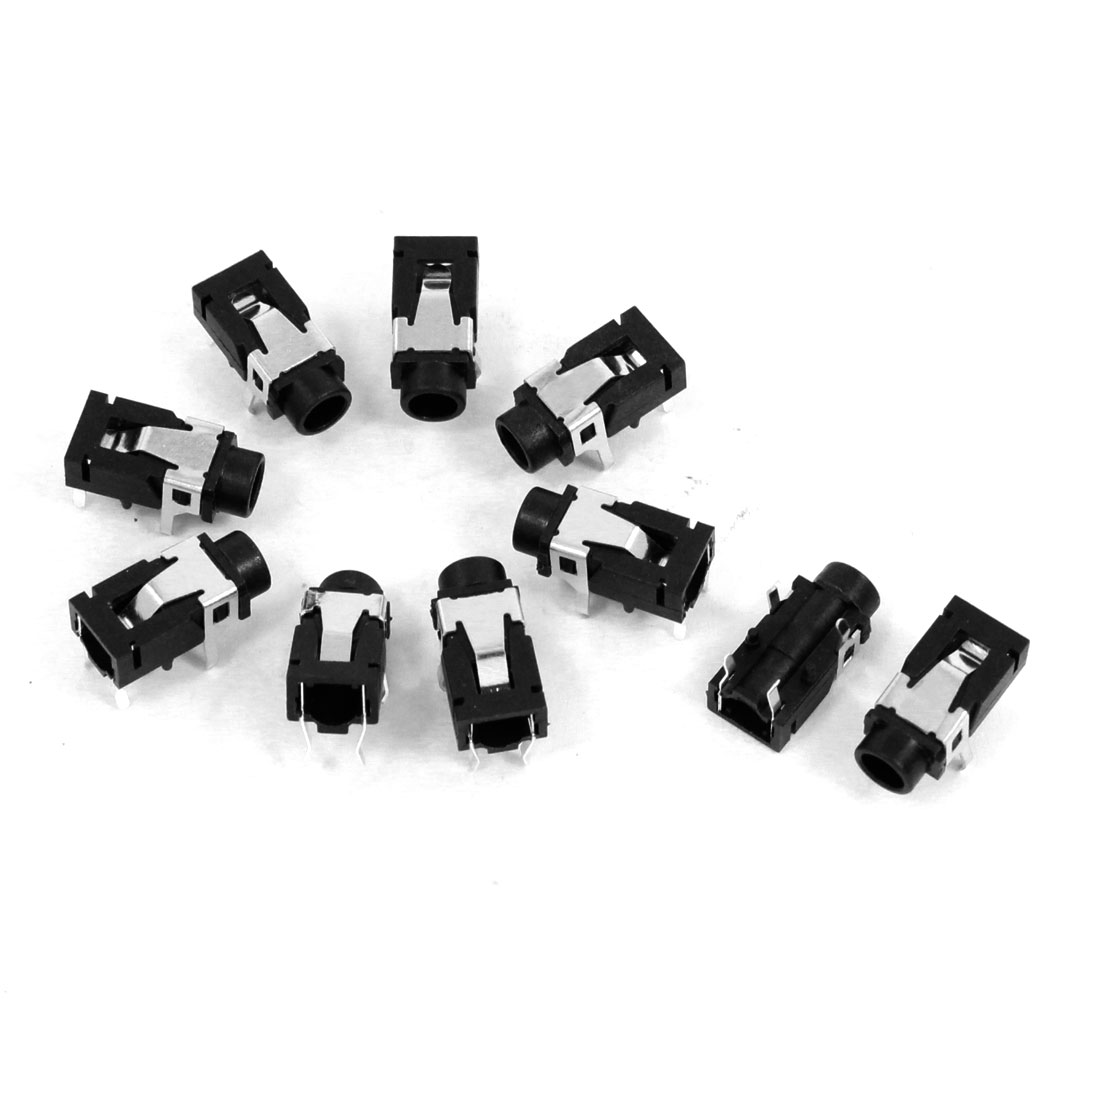 10 Pcs 4 Pin 3.5mm Stereo Jack Power Socket PCB Panel Mount for Headphone Earphone